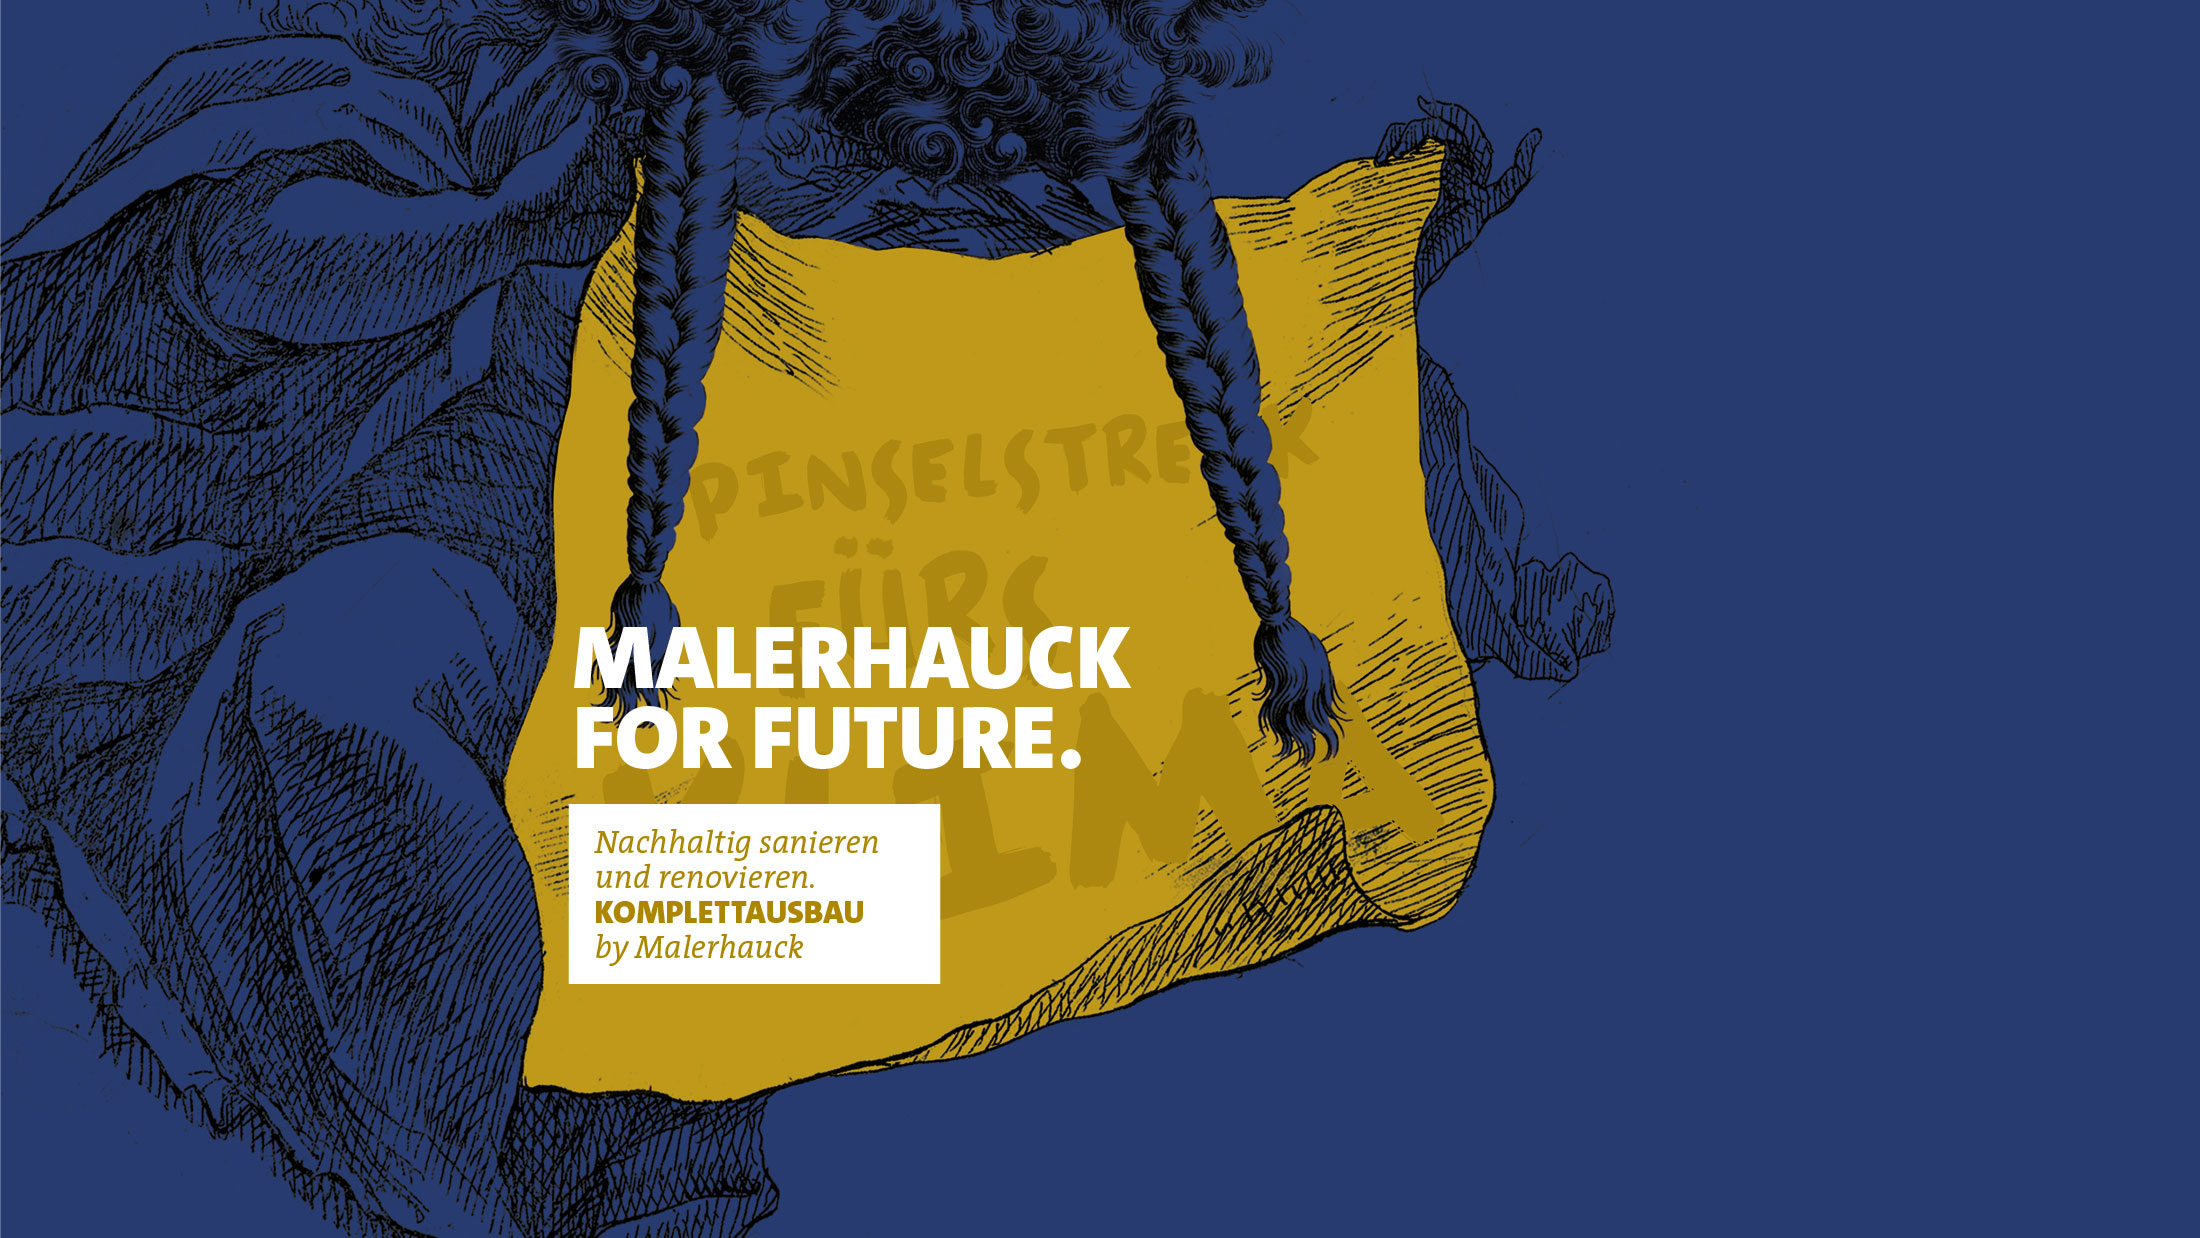 Malerhauck for future